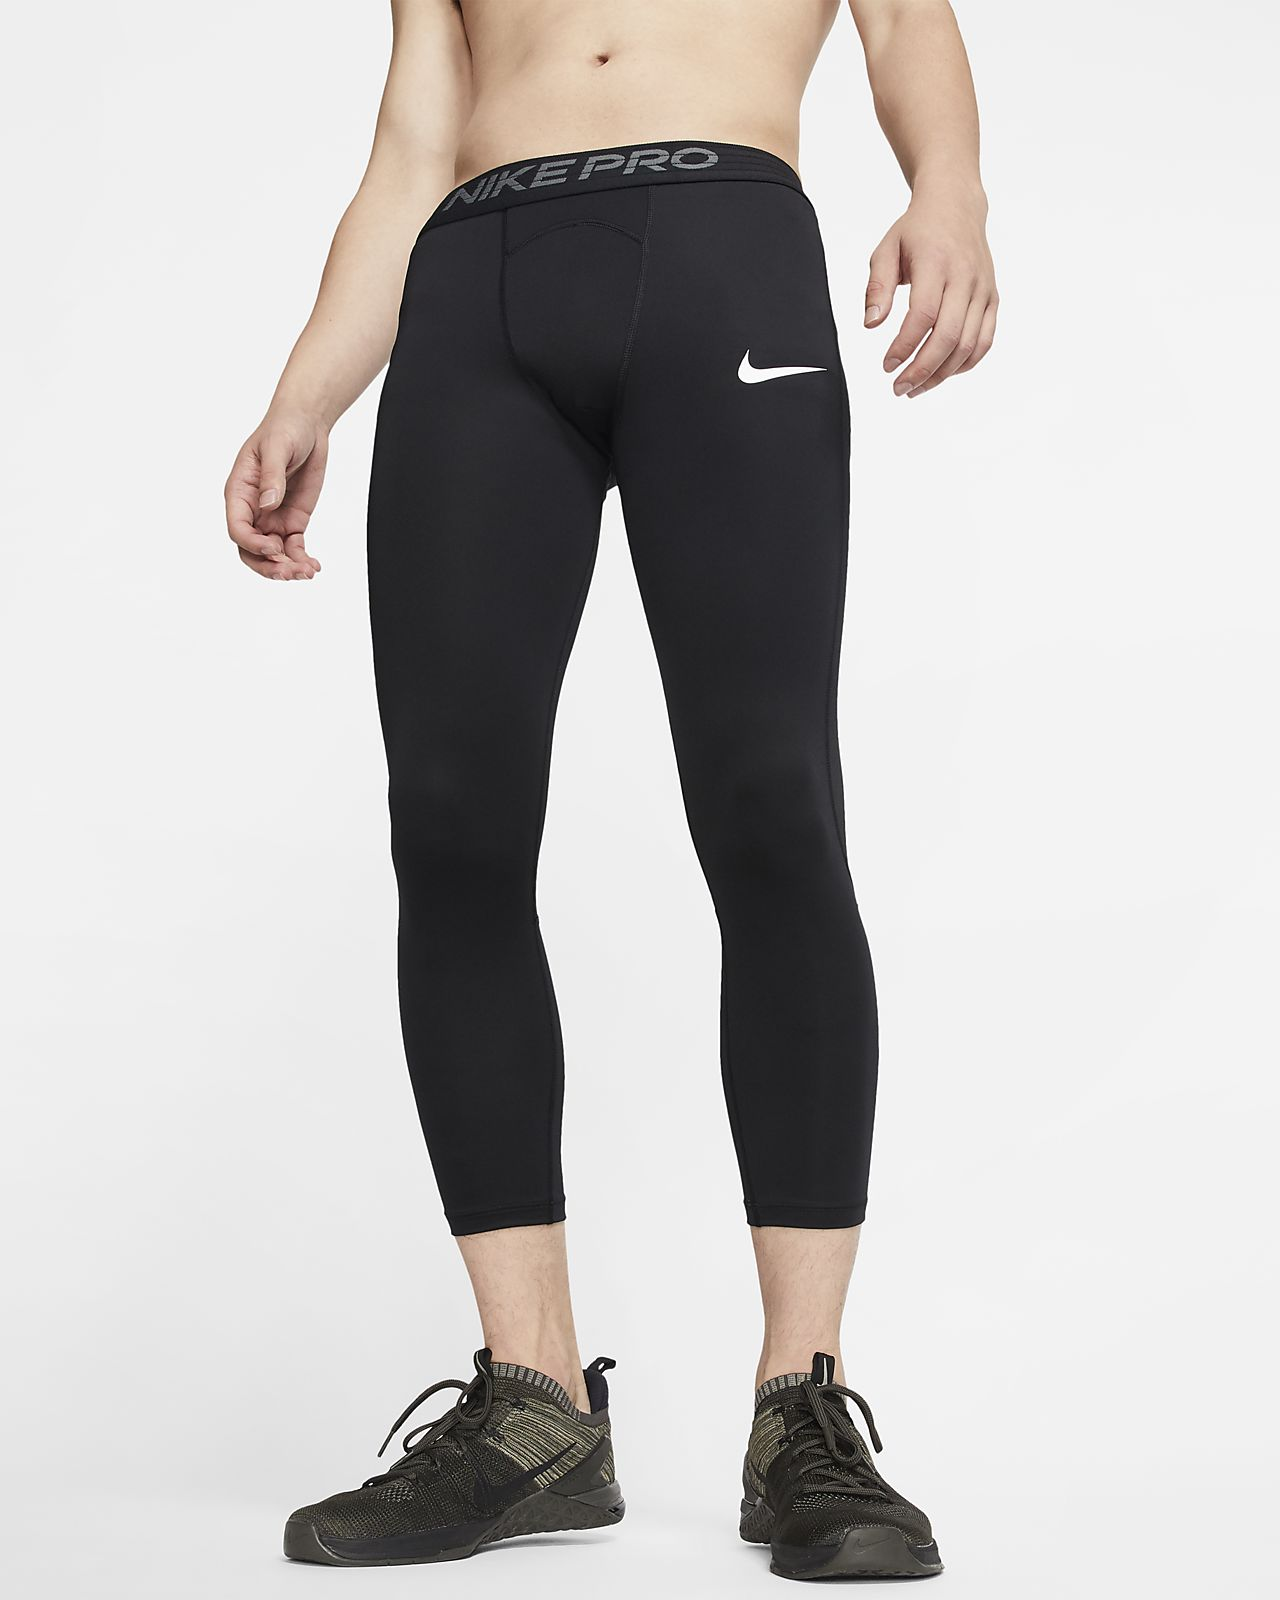 Nike Pro Men's 3/4 Tights